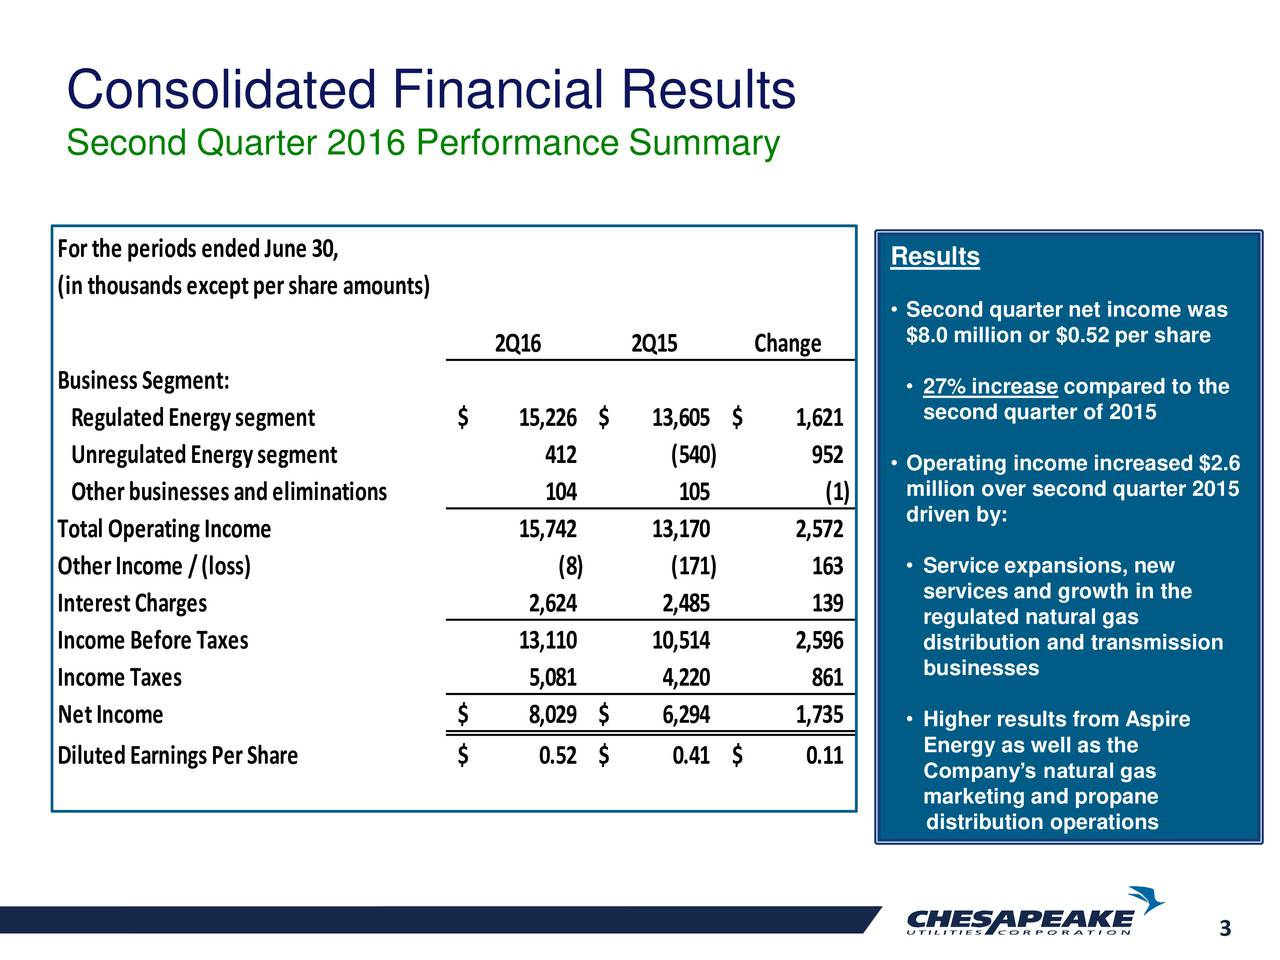 Second Quarter 2016 Performance Summary Forthe periods ended June 30, Results (in thousands exceptpershare amounts) Second quarter net income was $8.0 million or $0.52 per share 2Q16 2Q15 Change Business Segment:  27% increase compared to the Regulated Energy segment $ 15,226 $ 13,605 $ 1,621 second quarter of 2015 Unregulated Energy segment 412 (540) 952  Operating income increased $2.6 Otherbusinesses and eliminations 104 105 (1) million over second quarter 2015 driven by: Total Operating Income 15,742 13,170 2,572 OtherIncome /(loss) (8) (171) 163  Service expansions, new services and growth in the InterestCharges 2,624 2,485 139 regulated natural gas Income Before Taxes 13,110 10,514 2,596 distribution and transmission Income Taxes 5,081 4,220 861 businesses NetIncome $ 8,029 $ 6,294 1,735  Higher results from Aspire Diluted Earnings PerShare $ 0.52 $ 0.41 $ 0.11 Energy as well as the Companys natural gas marketing and propane distribution operations 3